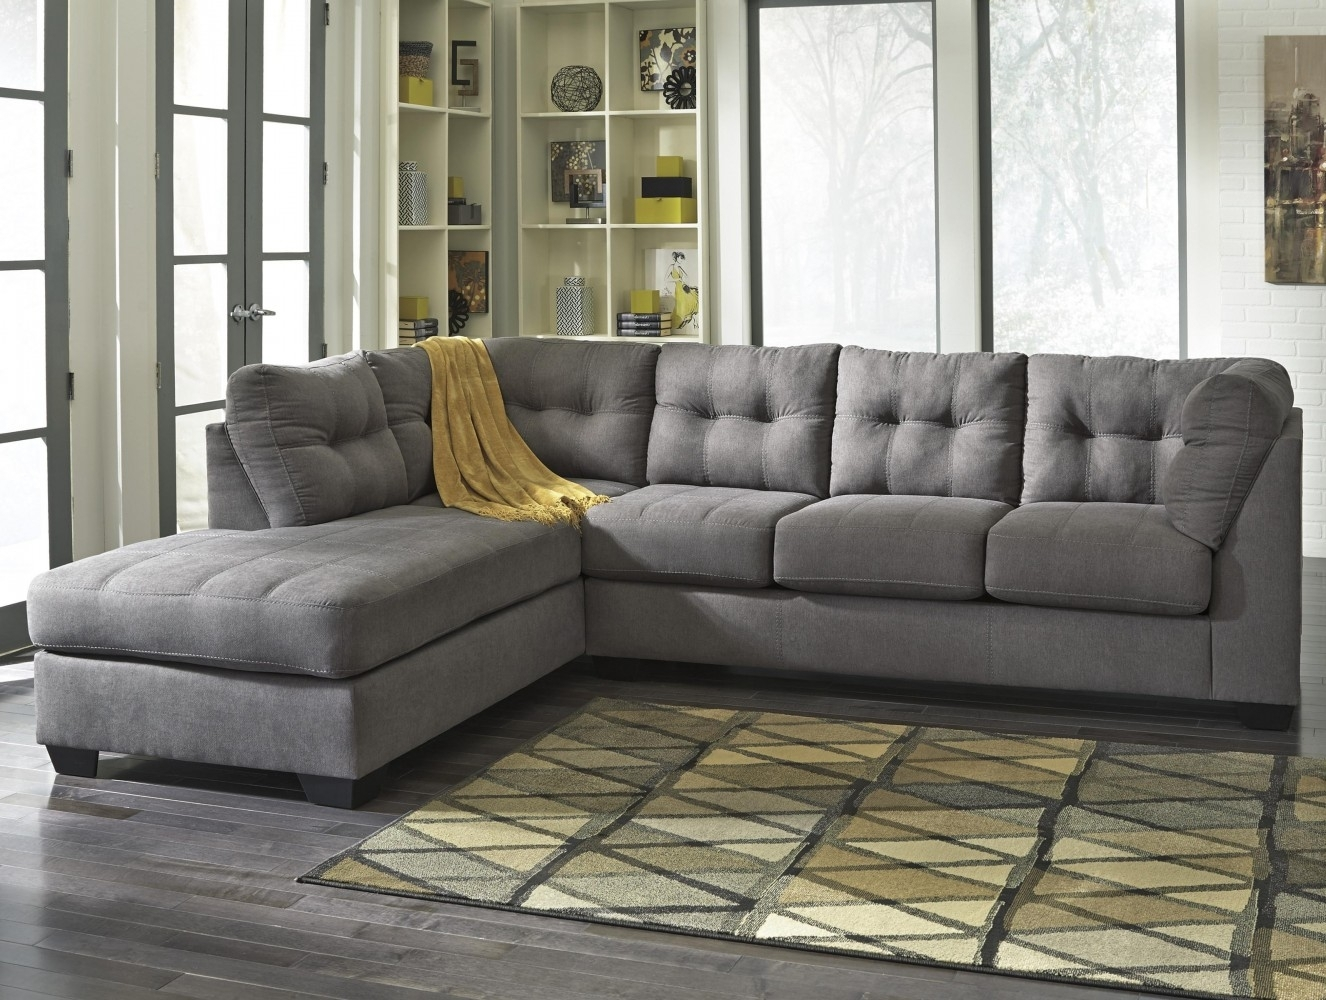 2 Piece Sectional Sofa Canada | Baci Living Room Within Josephine 2 Piece Sectionals With Laf Sofa (Image 2 of 25)